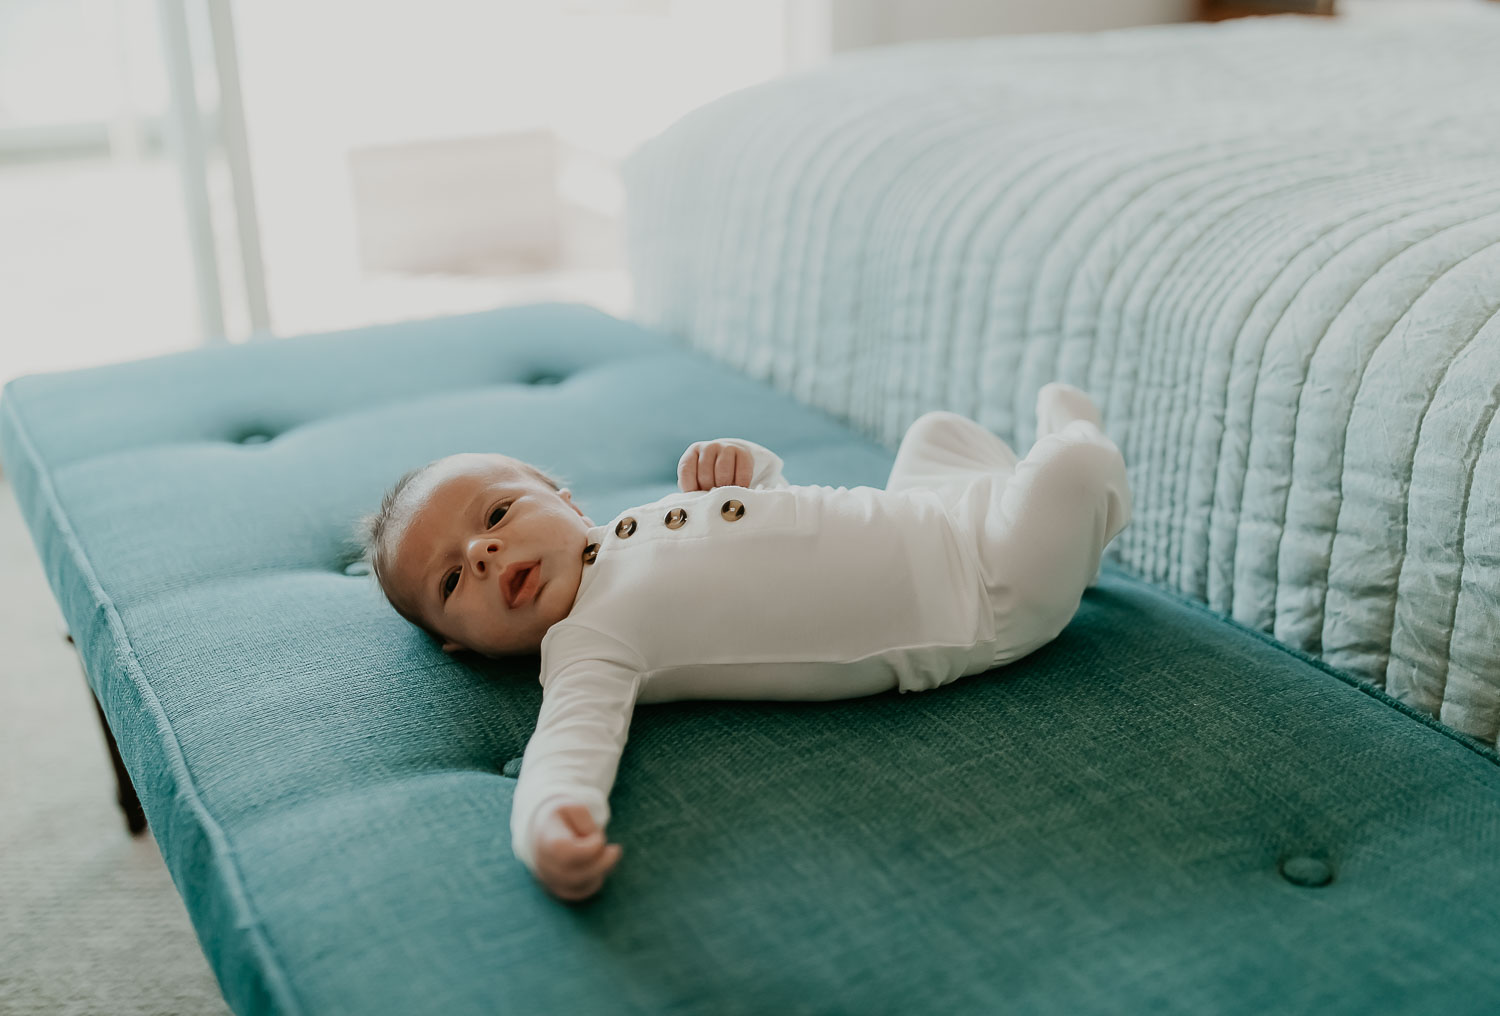 San-Francisco-Best-Newborn-Photographer-Shefali-Parekh-01